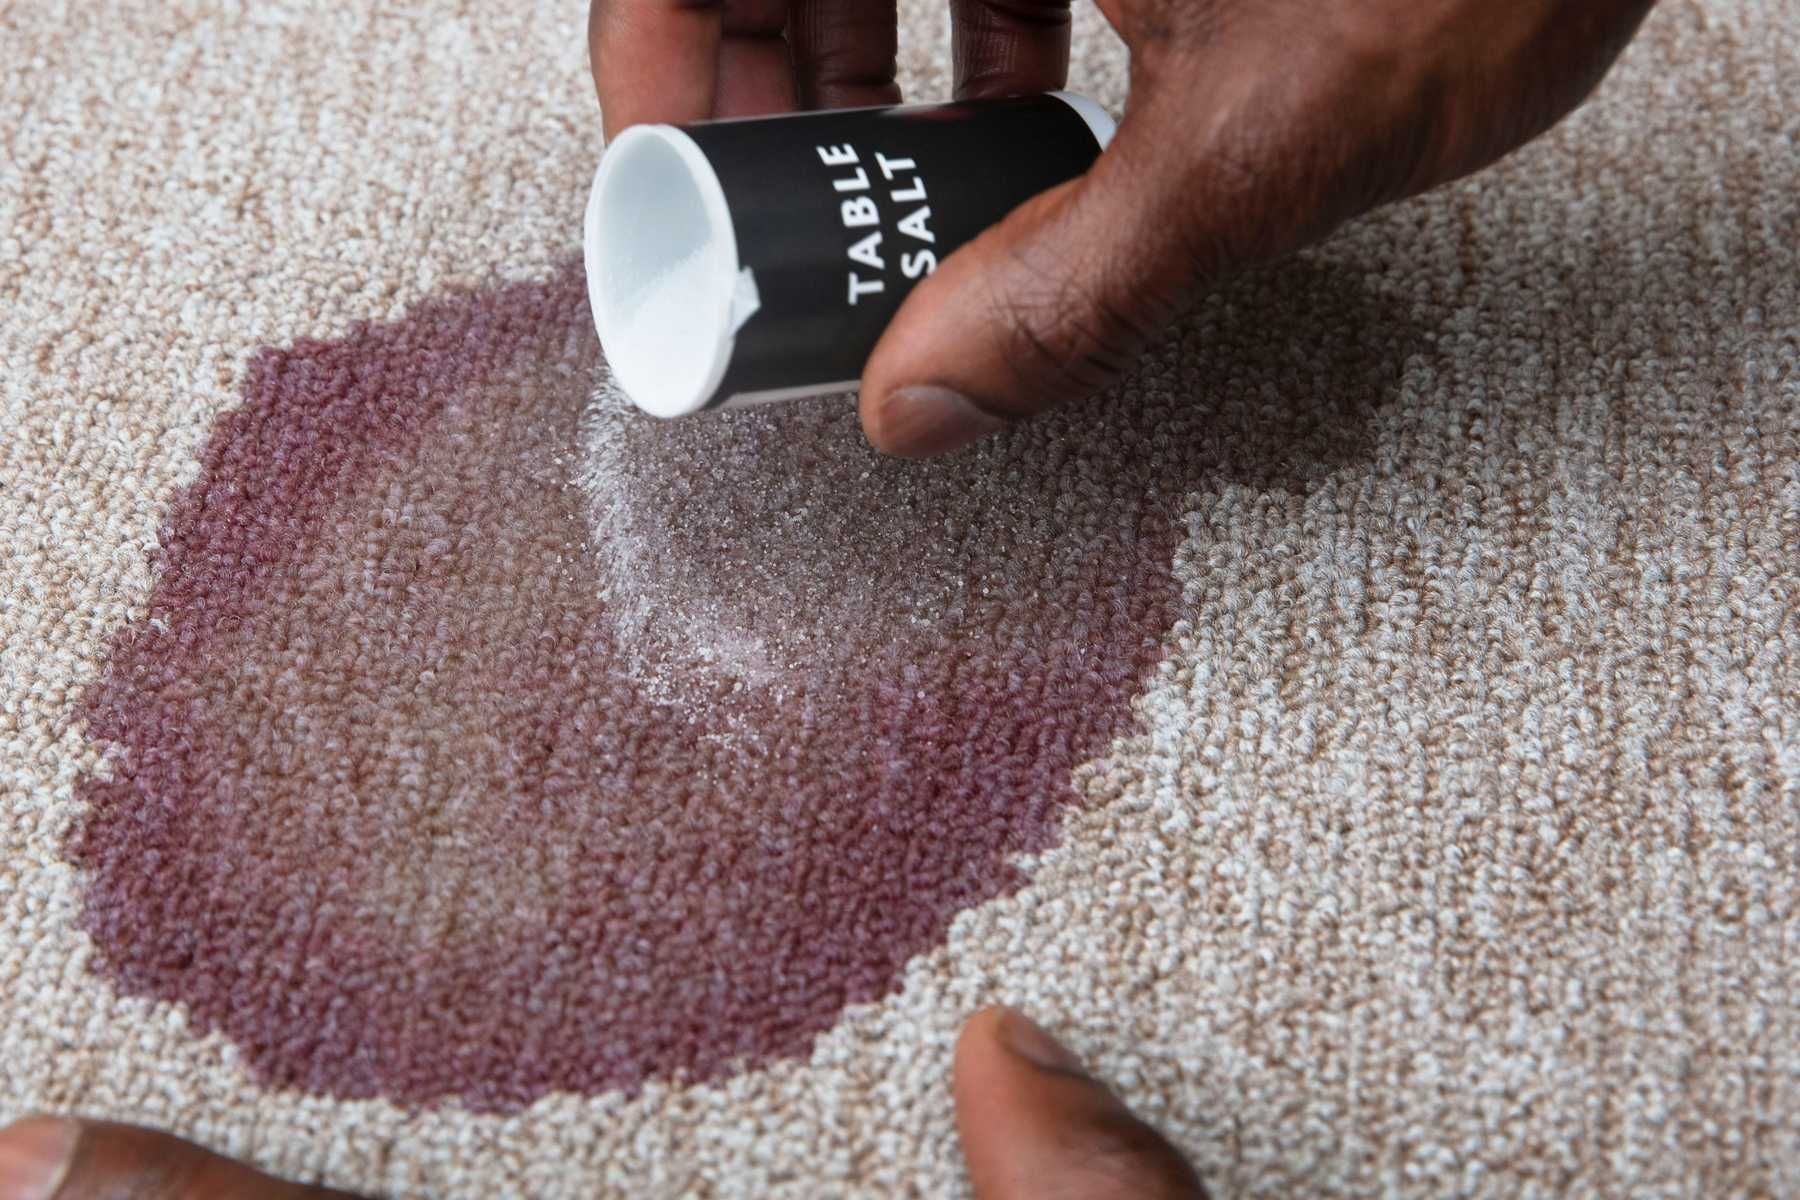 How To Get Blood Stains Out Of Carpet Homemade Carpet Cleaner